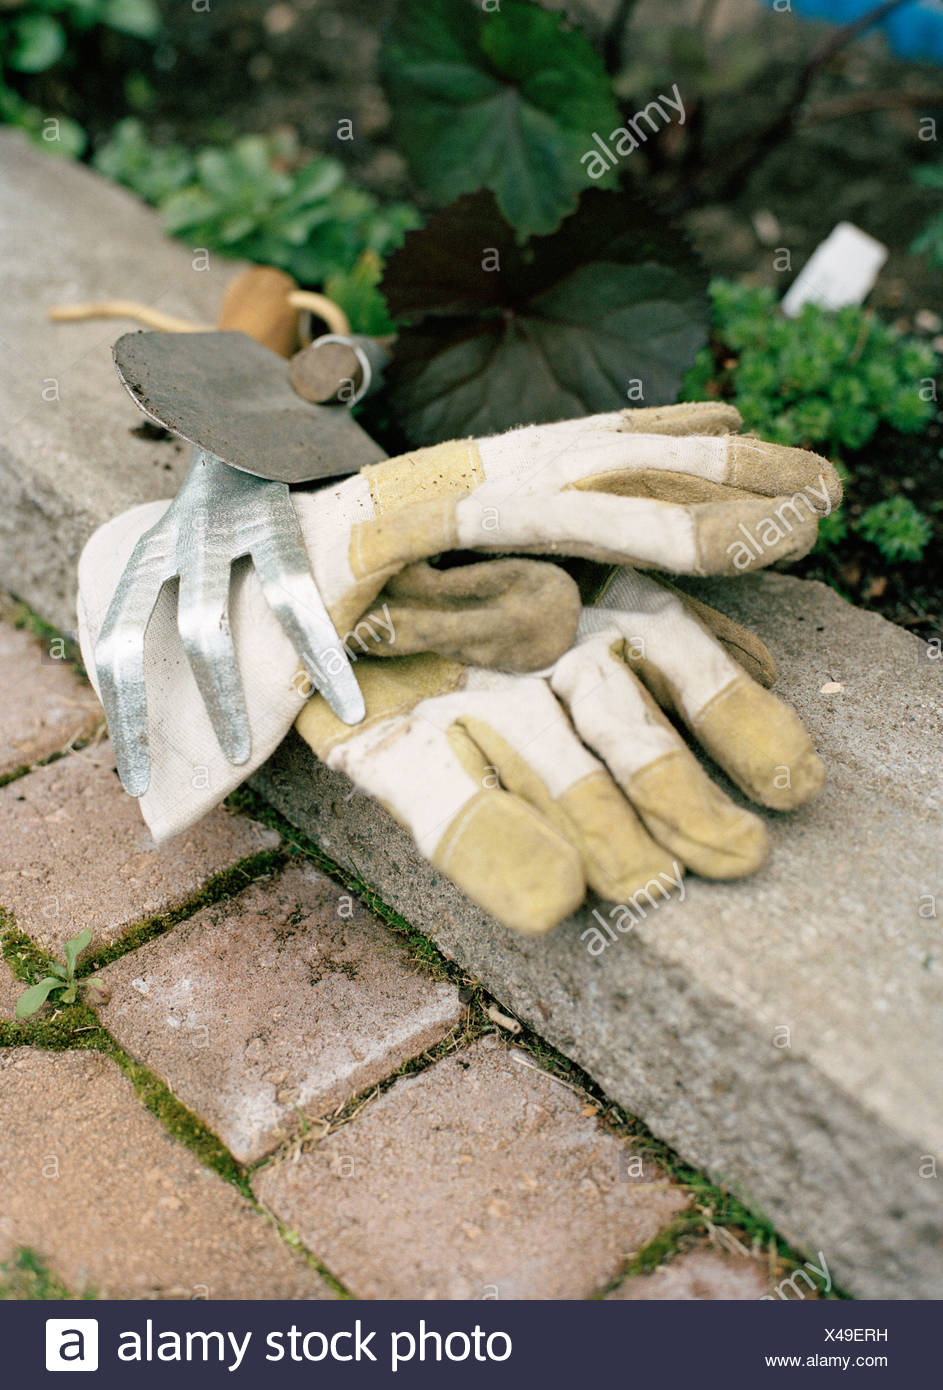 Gloves and gardening tools. - Stock Image